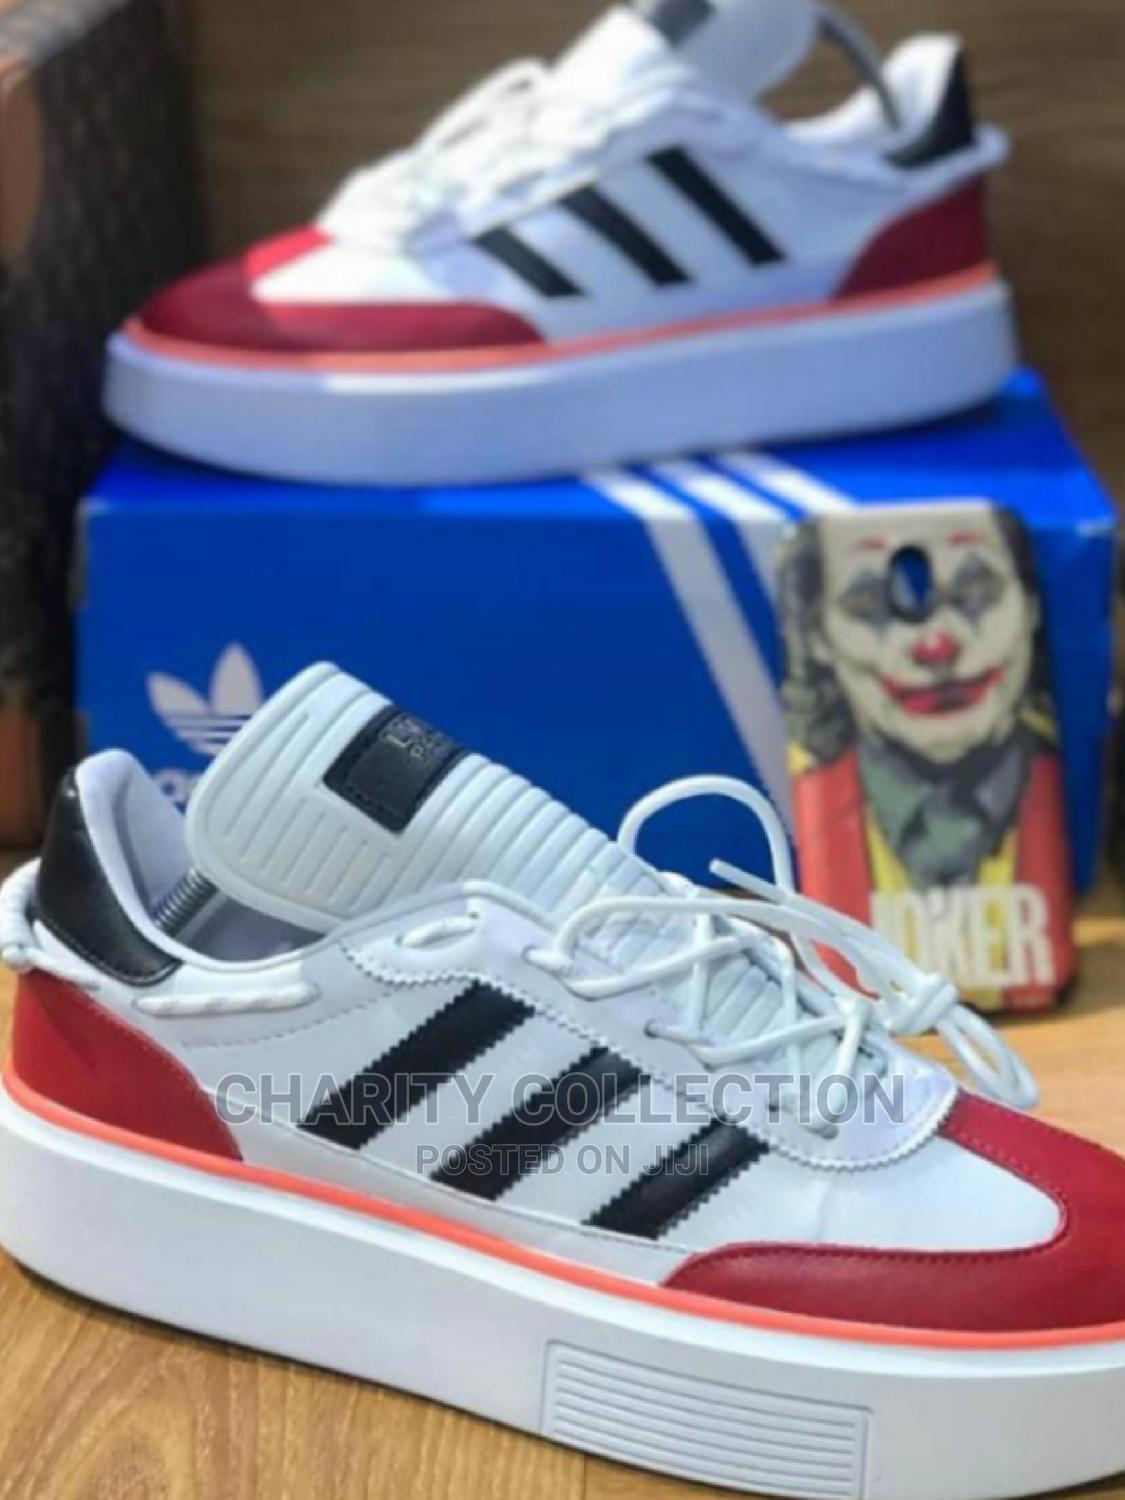 Men's Adidas Fashion Canvas Shoe   Shoes for sale in Mushin, Lagos State, Nigeria